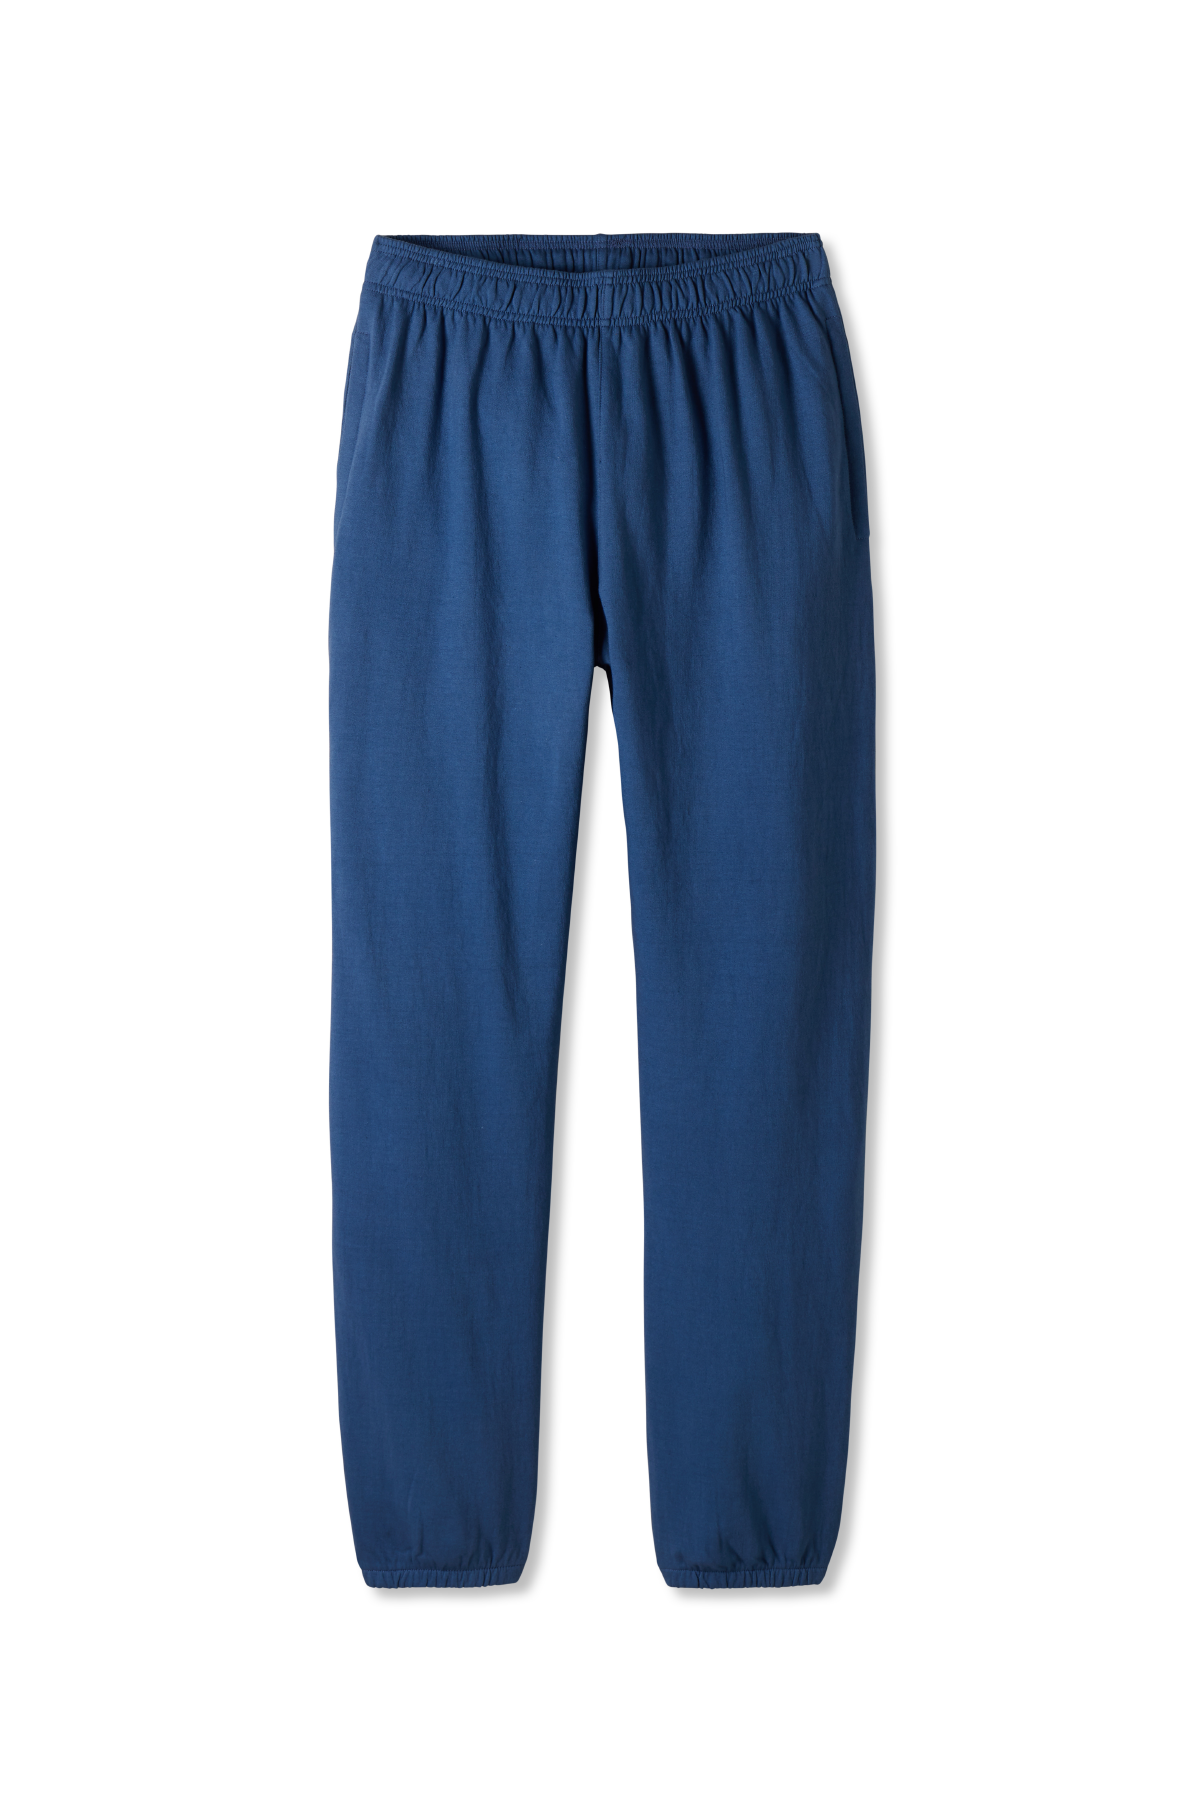 Mens Sweatpants in River